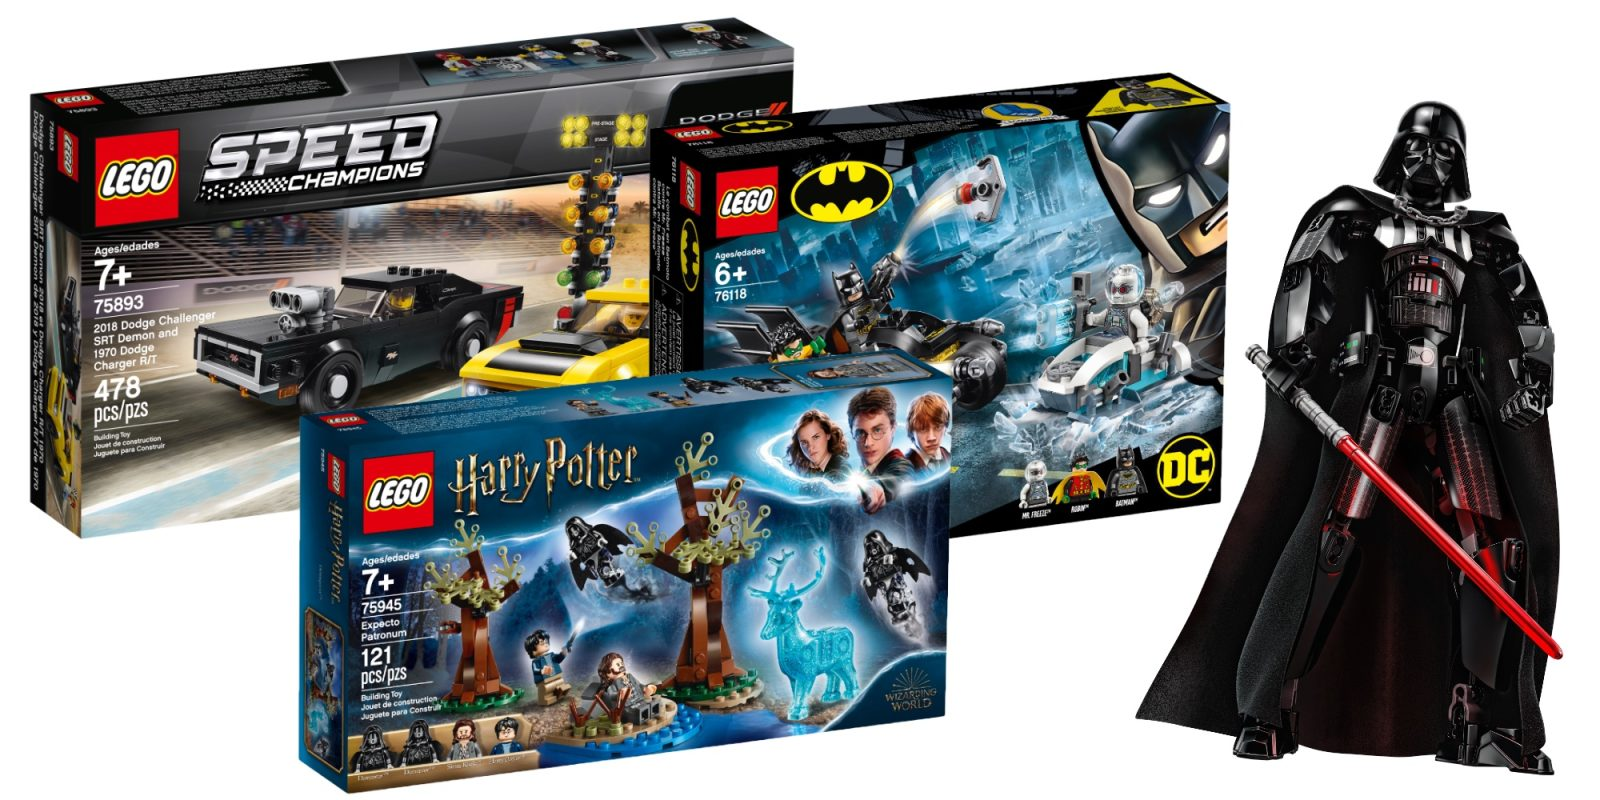 Save up to 30% on LEGO Speed Champions, Star Wars, Harry Potter, more from $10